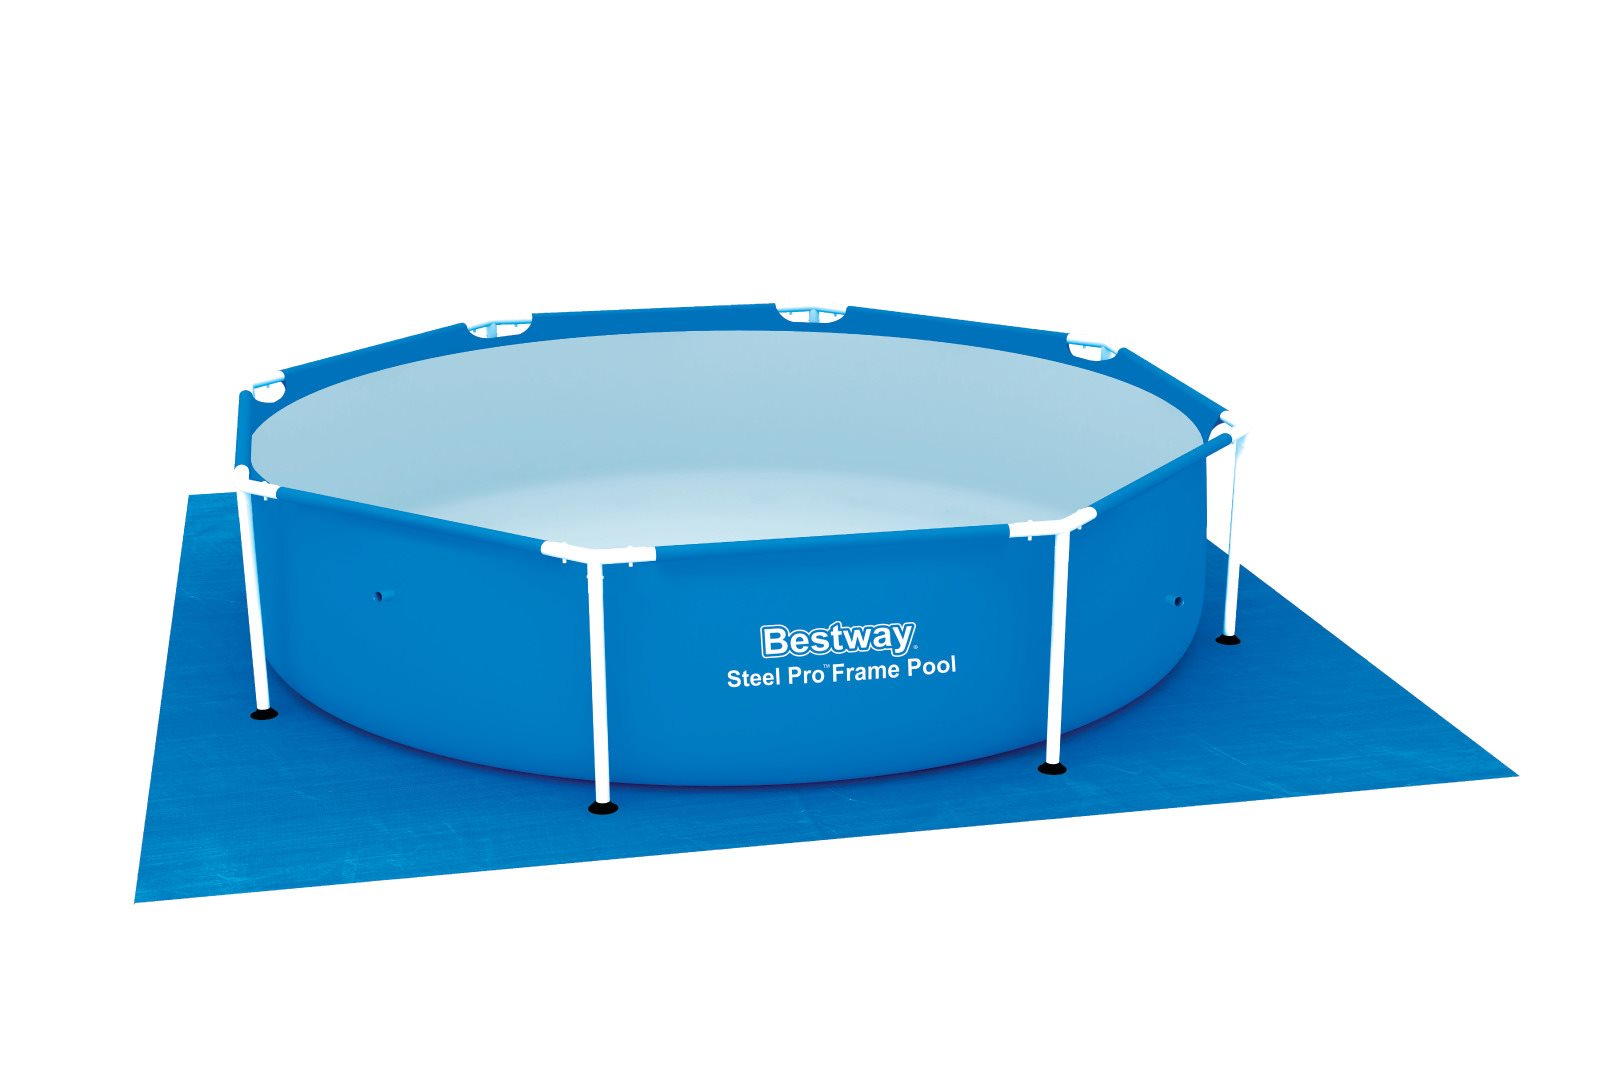 Frame Pool Bestway Bestway 58002 Carpet Background Square For Swimming Pool Cm 396x396